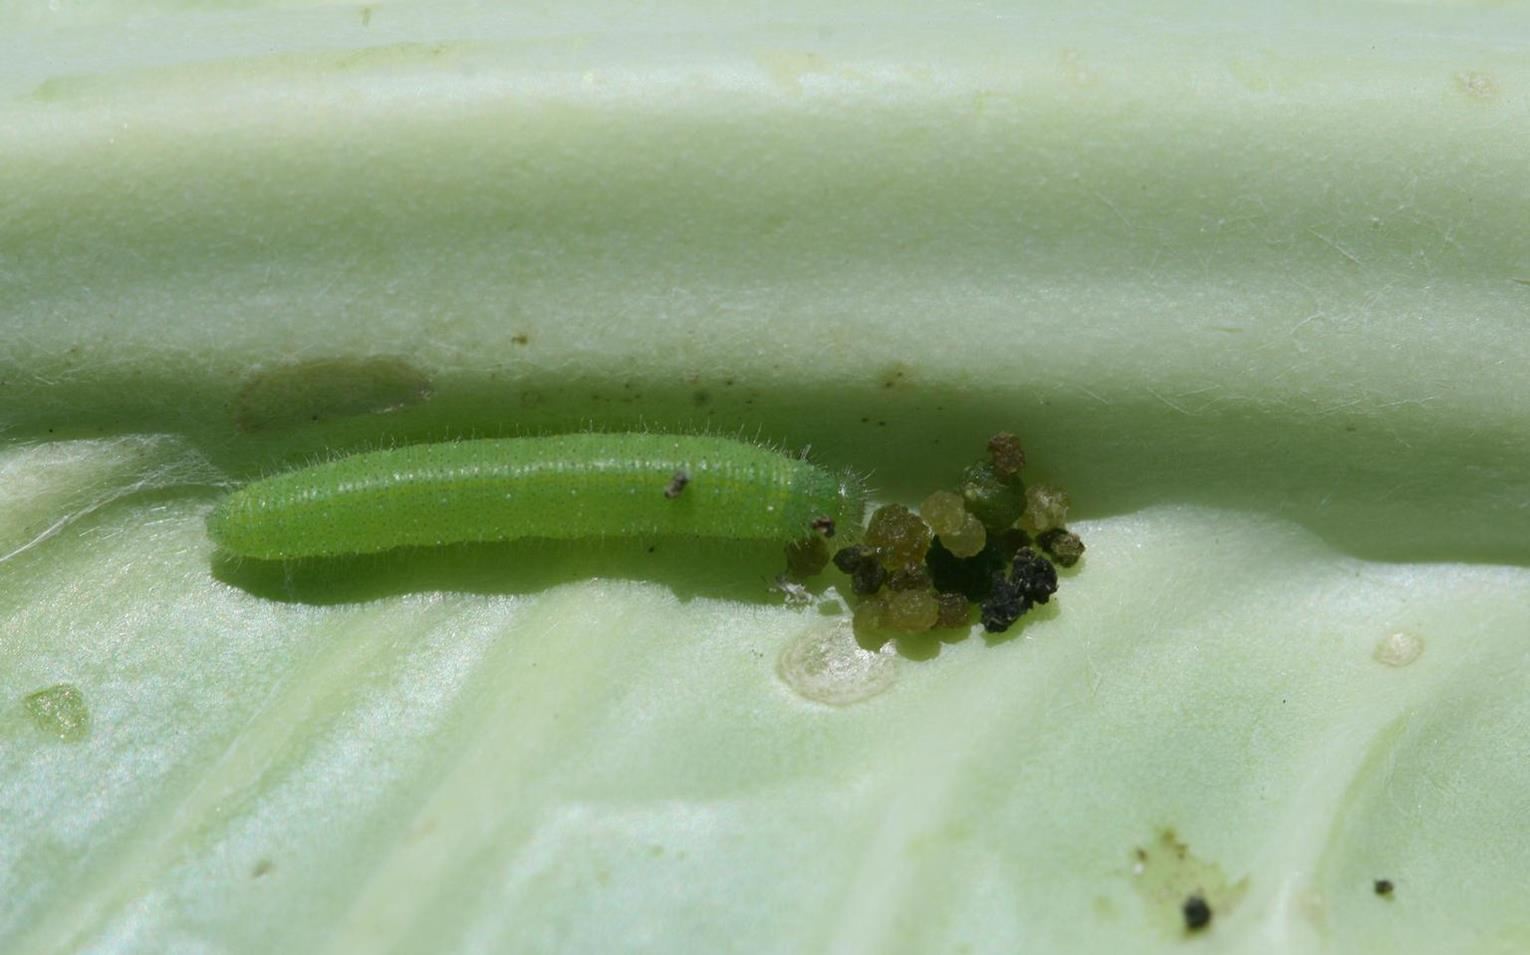 Cabbageworm_1.jpg